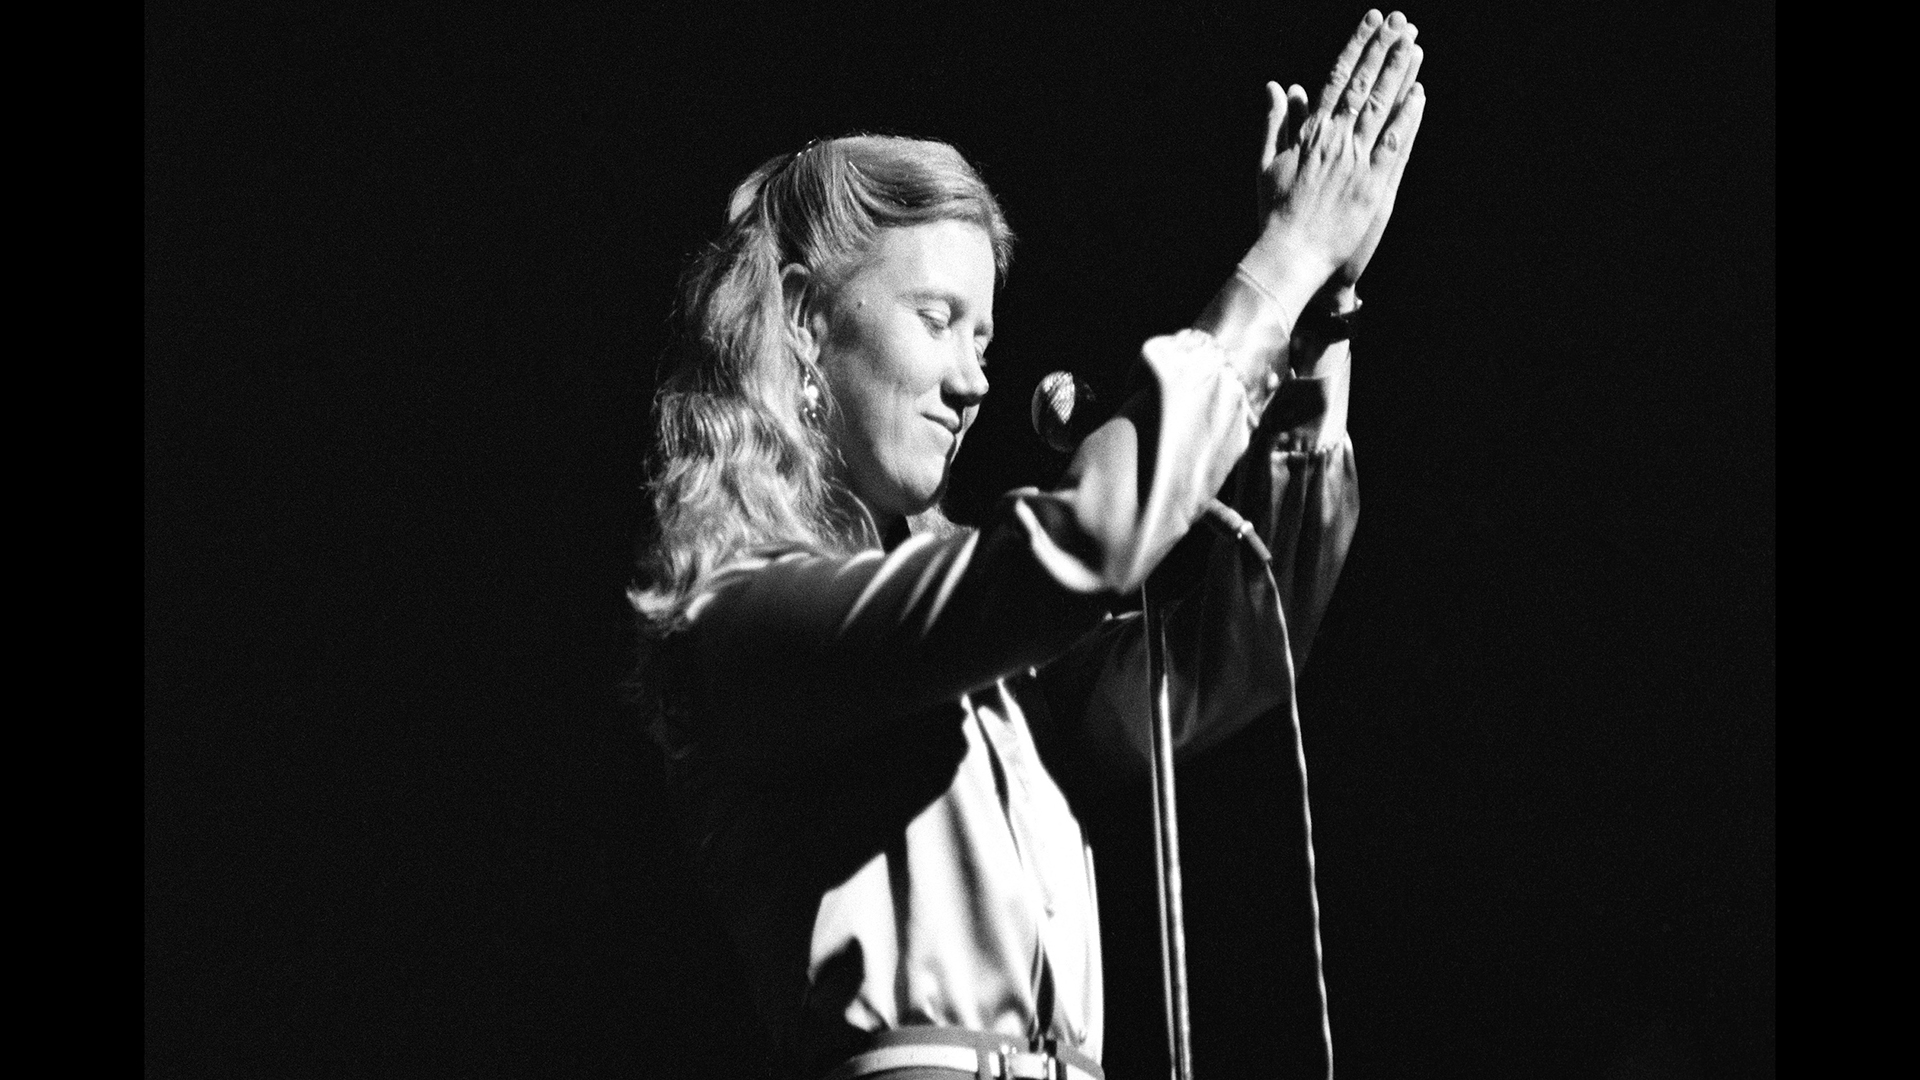 Female singer Holly Near holds her hands in prayer position over her head while standing in front of a microphone.